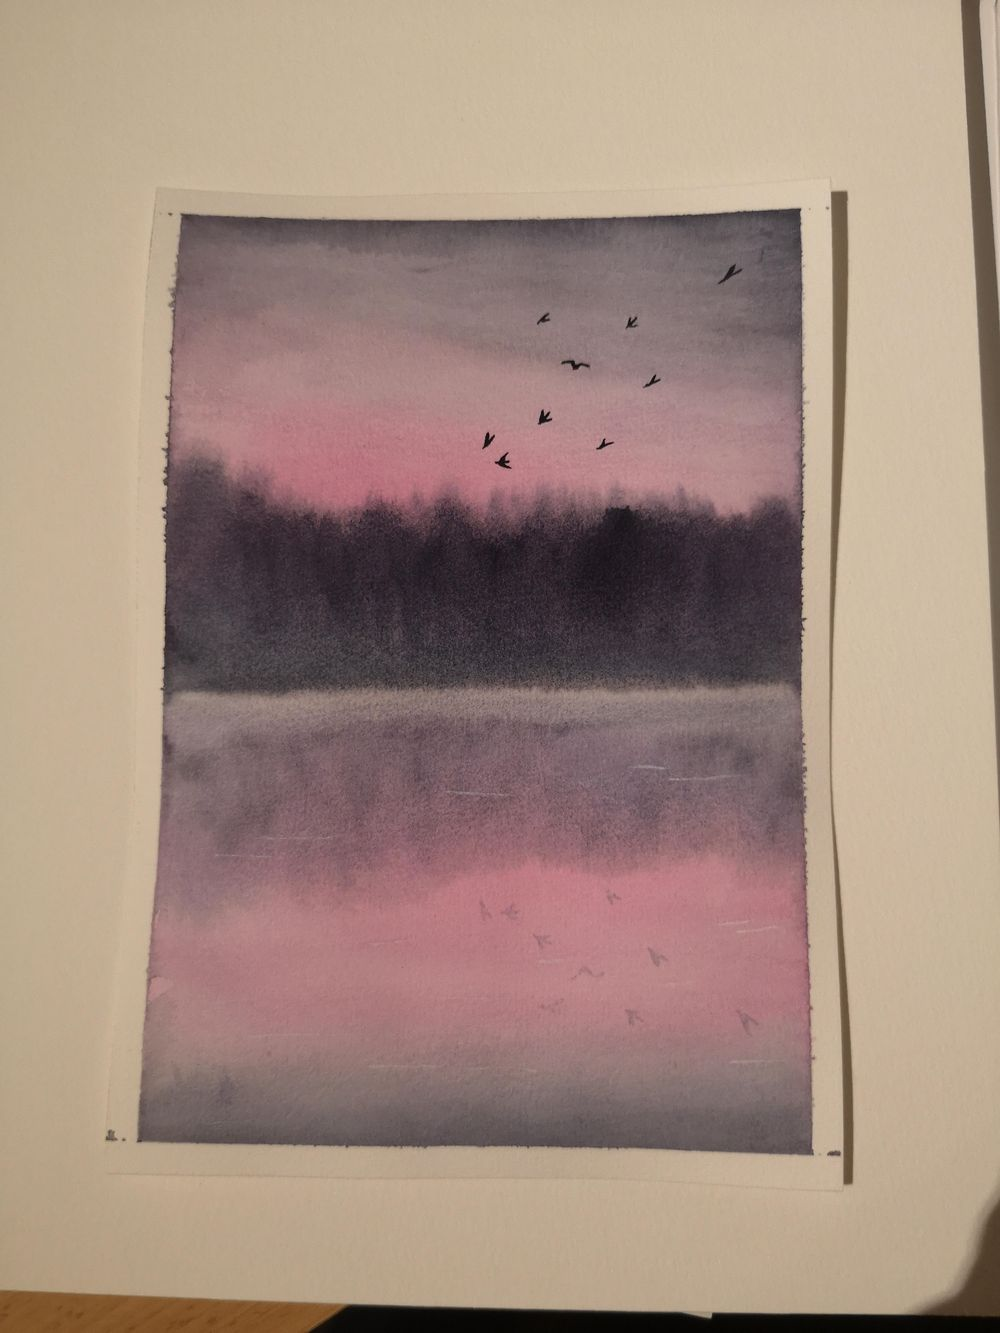 Misty Morning & Sunset at the Beach - image 2 - student project